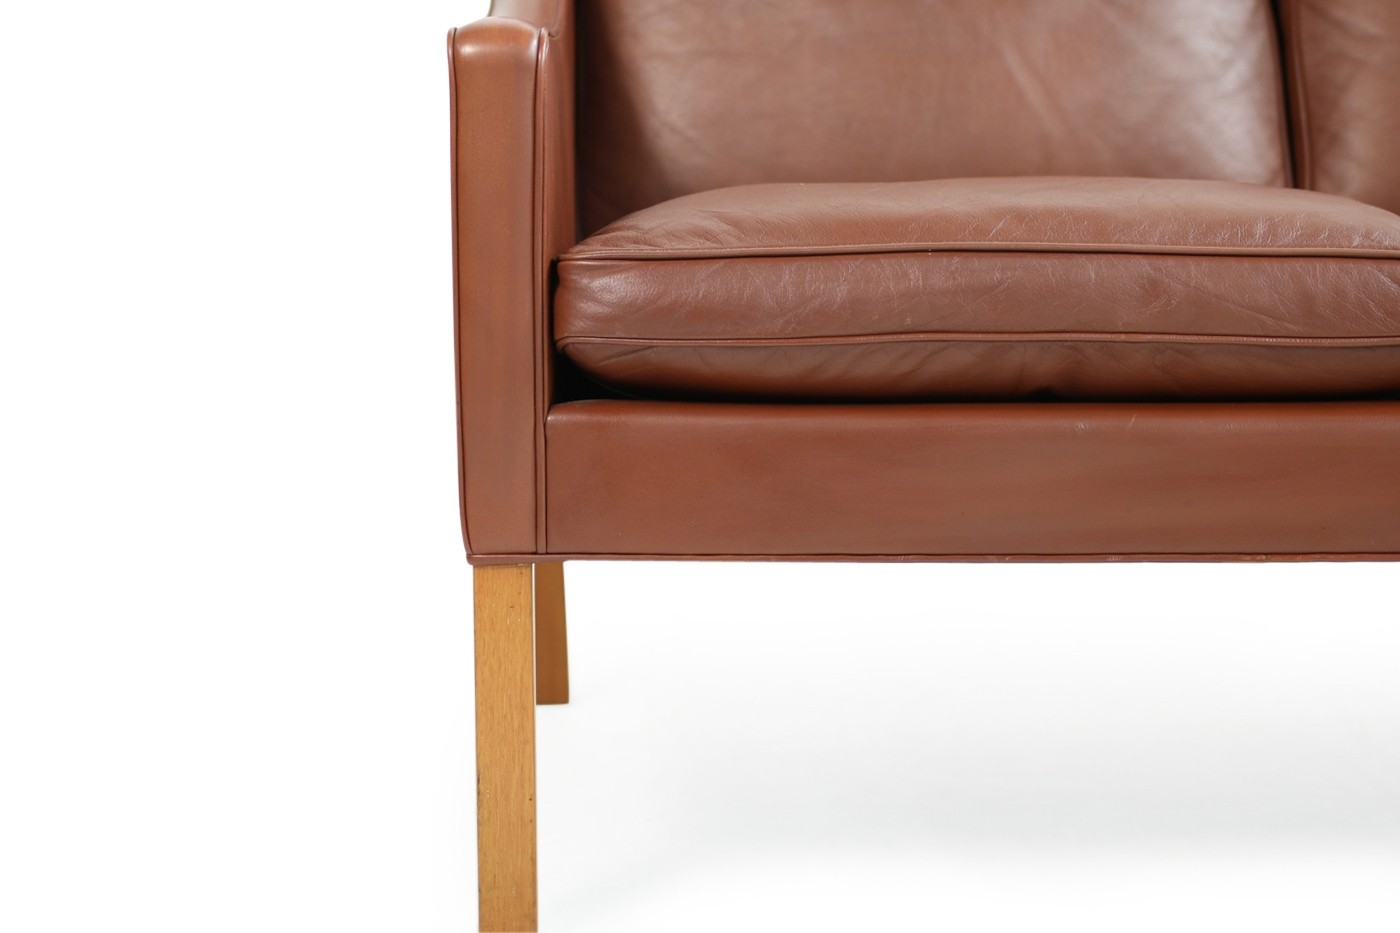 mogensen sofa 2209 cat scratcher protector 1960s borge leather mod by fredericia